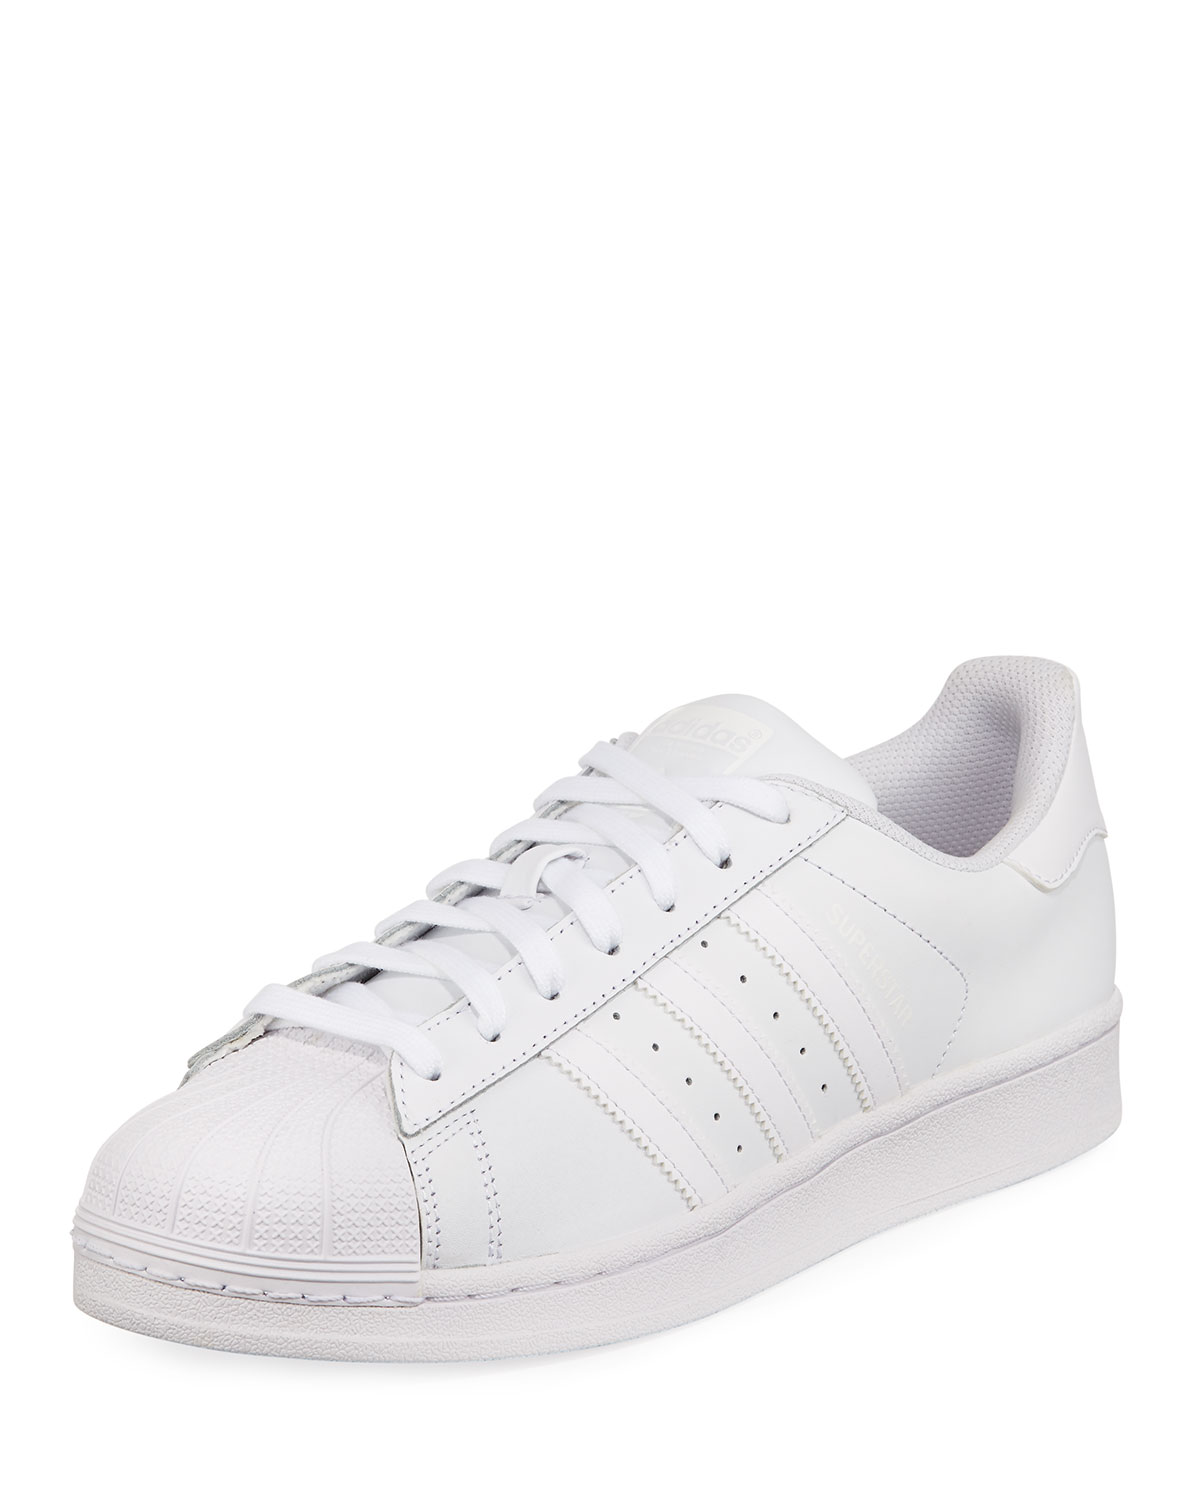 bf6e4b33b5fa Adidas Men s Superstar Foundation Leather Sneakers